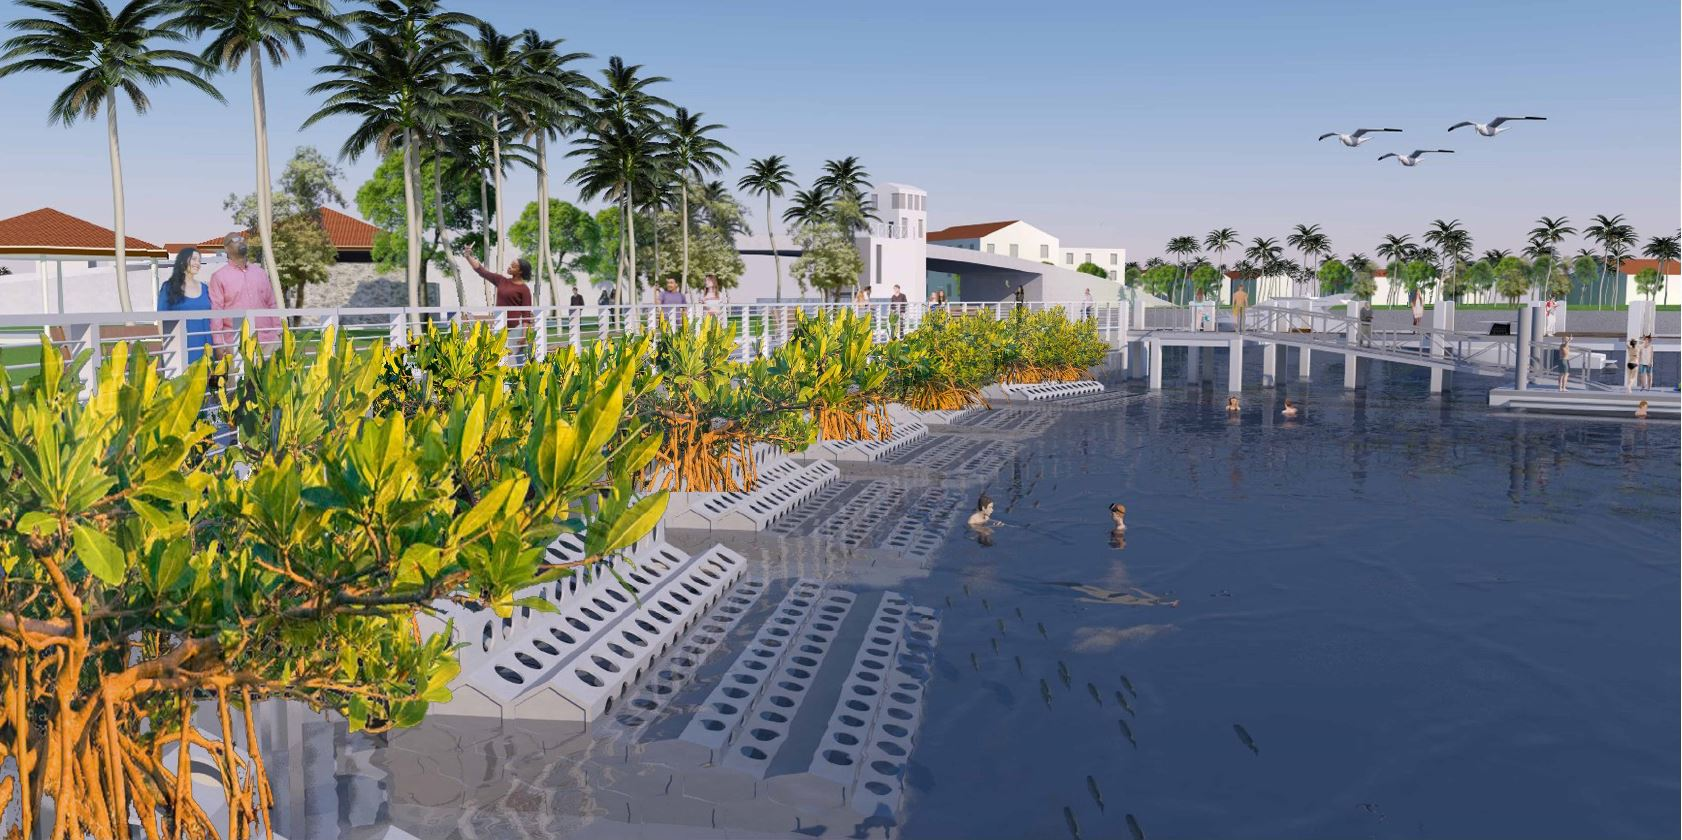 An artist's rendering of hybrid coastal protection showing people swimming near the structure and walking on a path behind it.